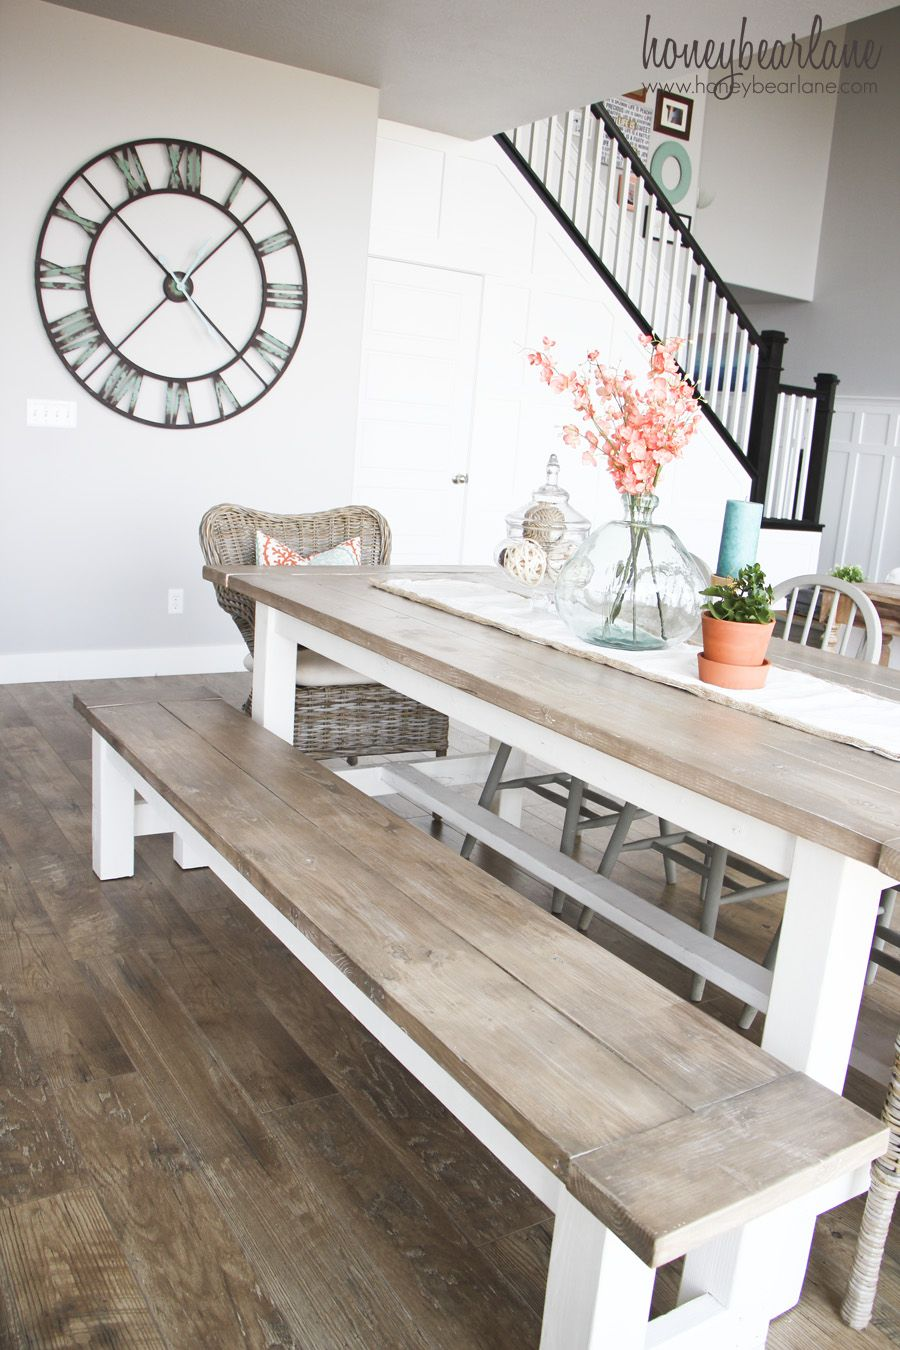 DIY Farmhouse Table and Bench | Pinterest | Diy farmhouse table ...